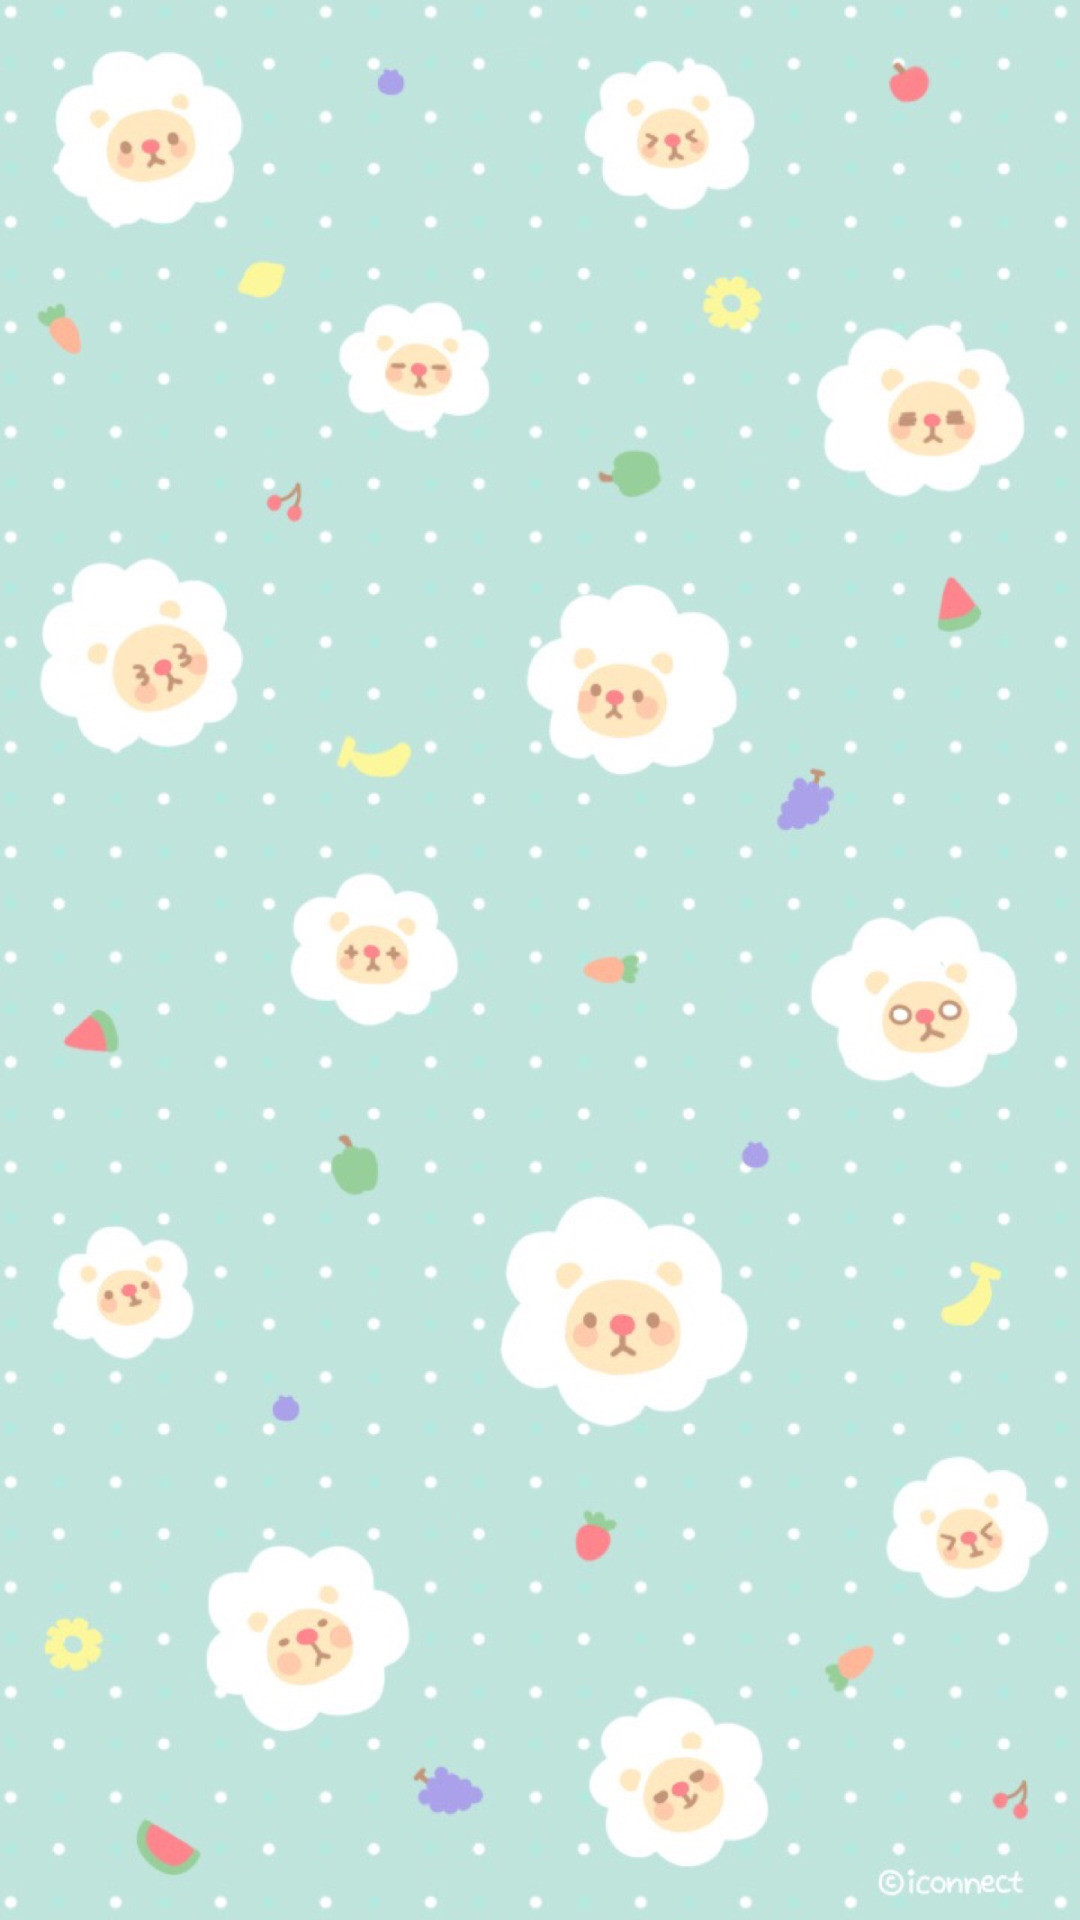 Wallpaper Iphone Pastel Cute Wallpapers For Phones 69 Images